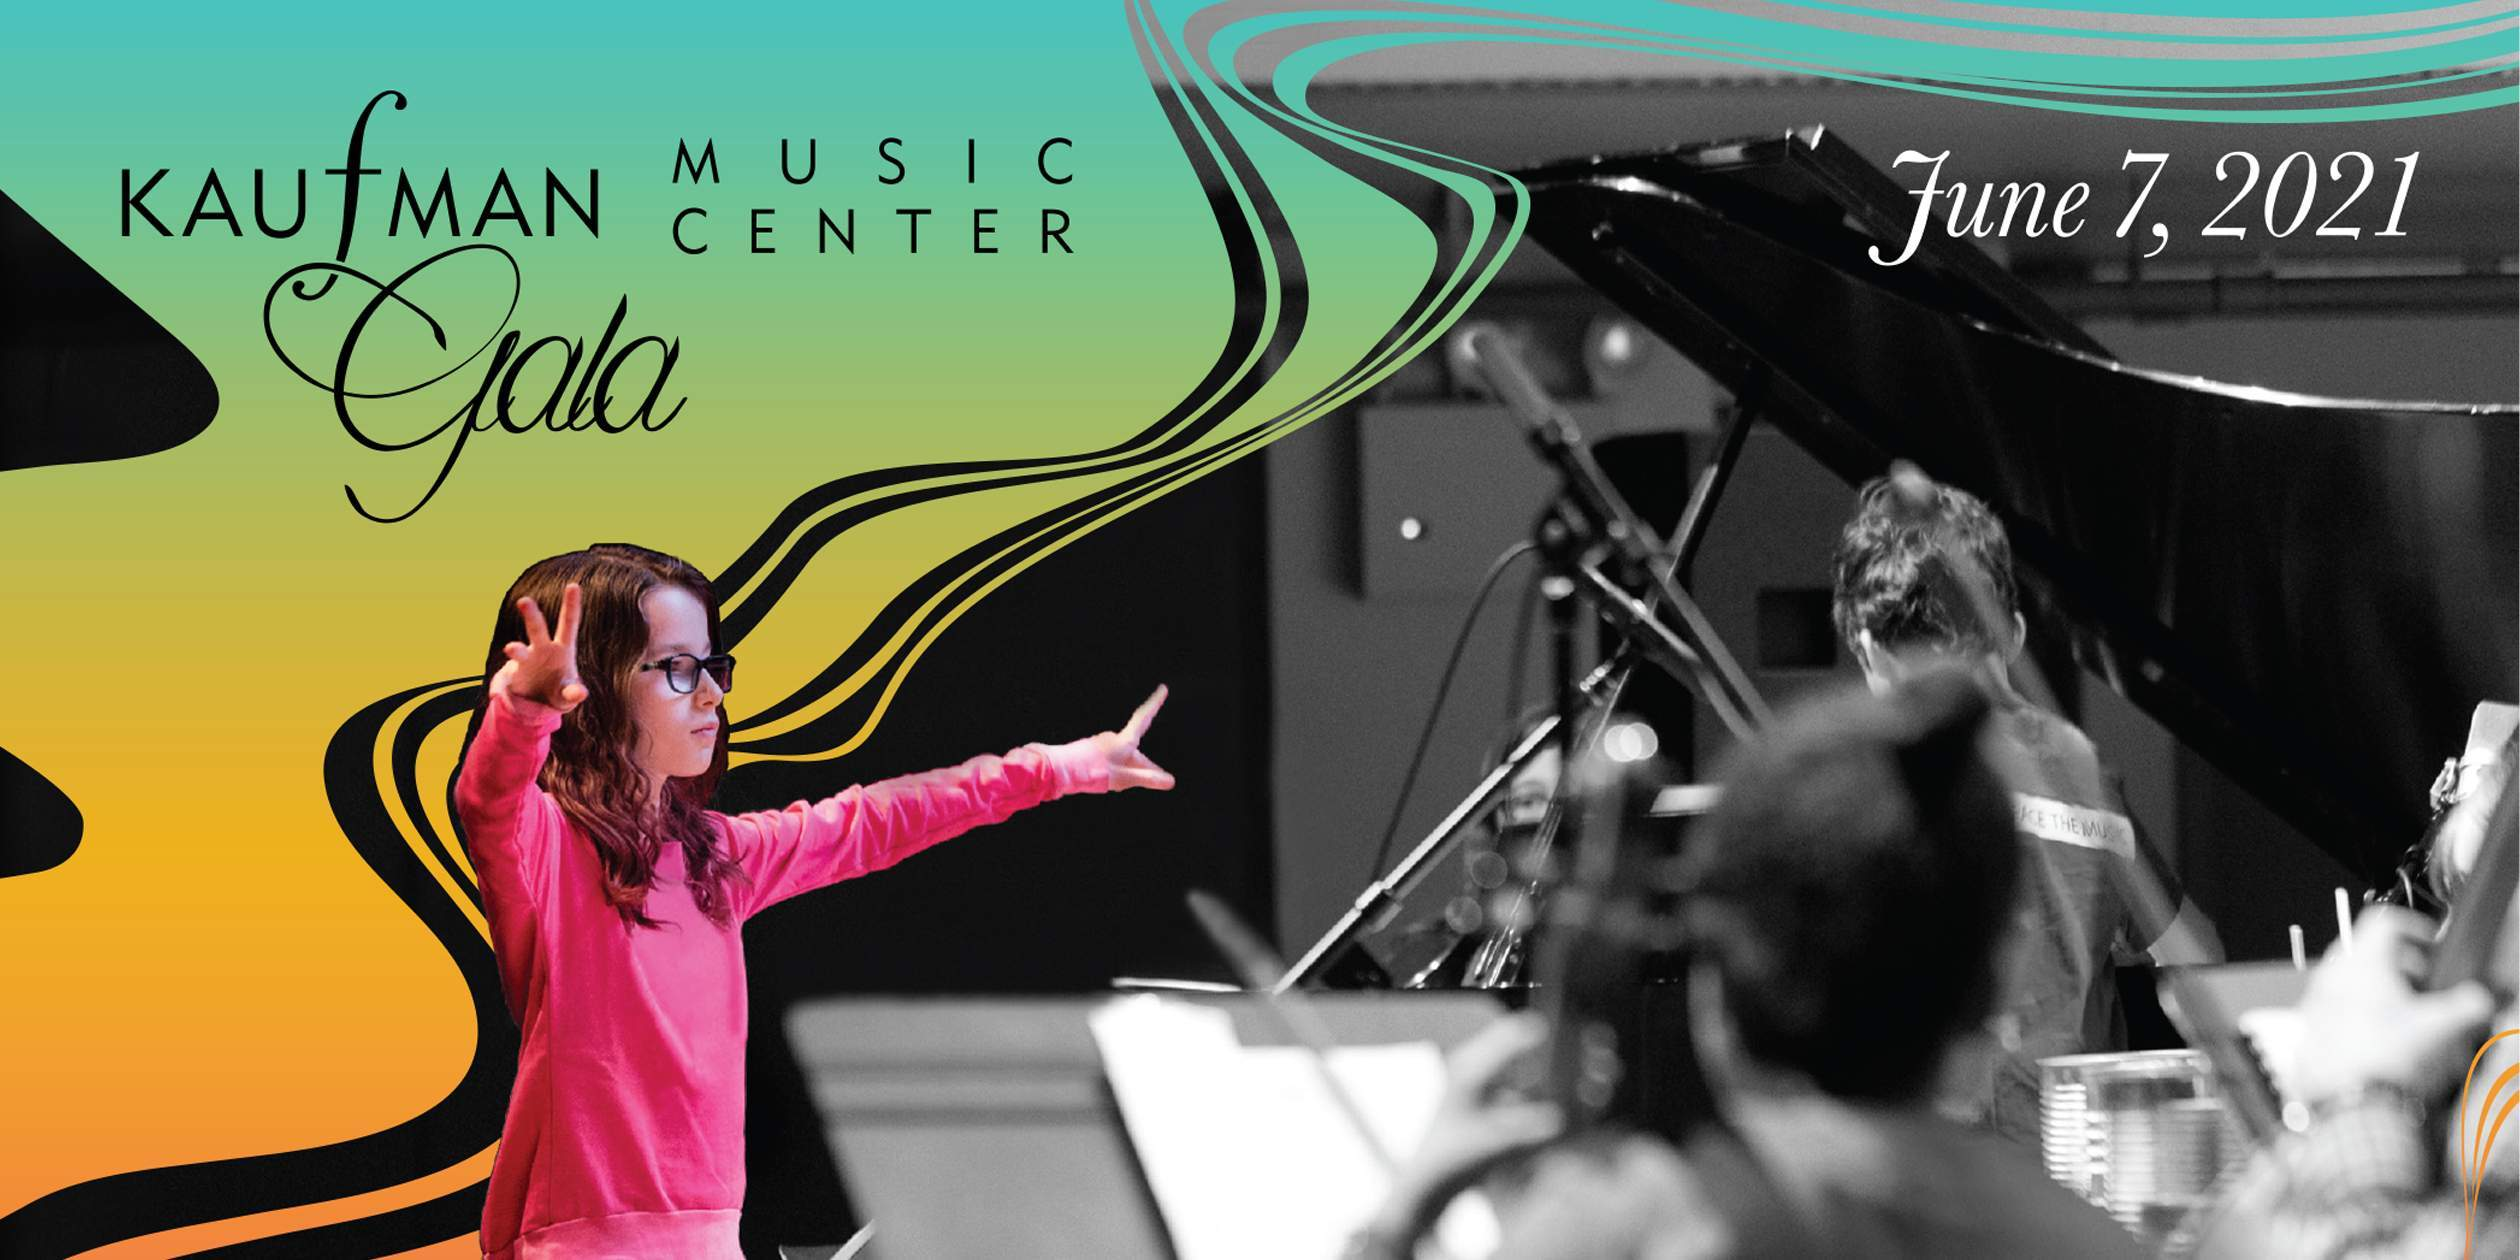 June 7: Save the Date for Kaufman Music Center's 2021 Gala!